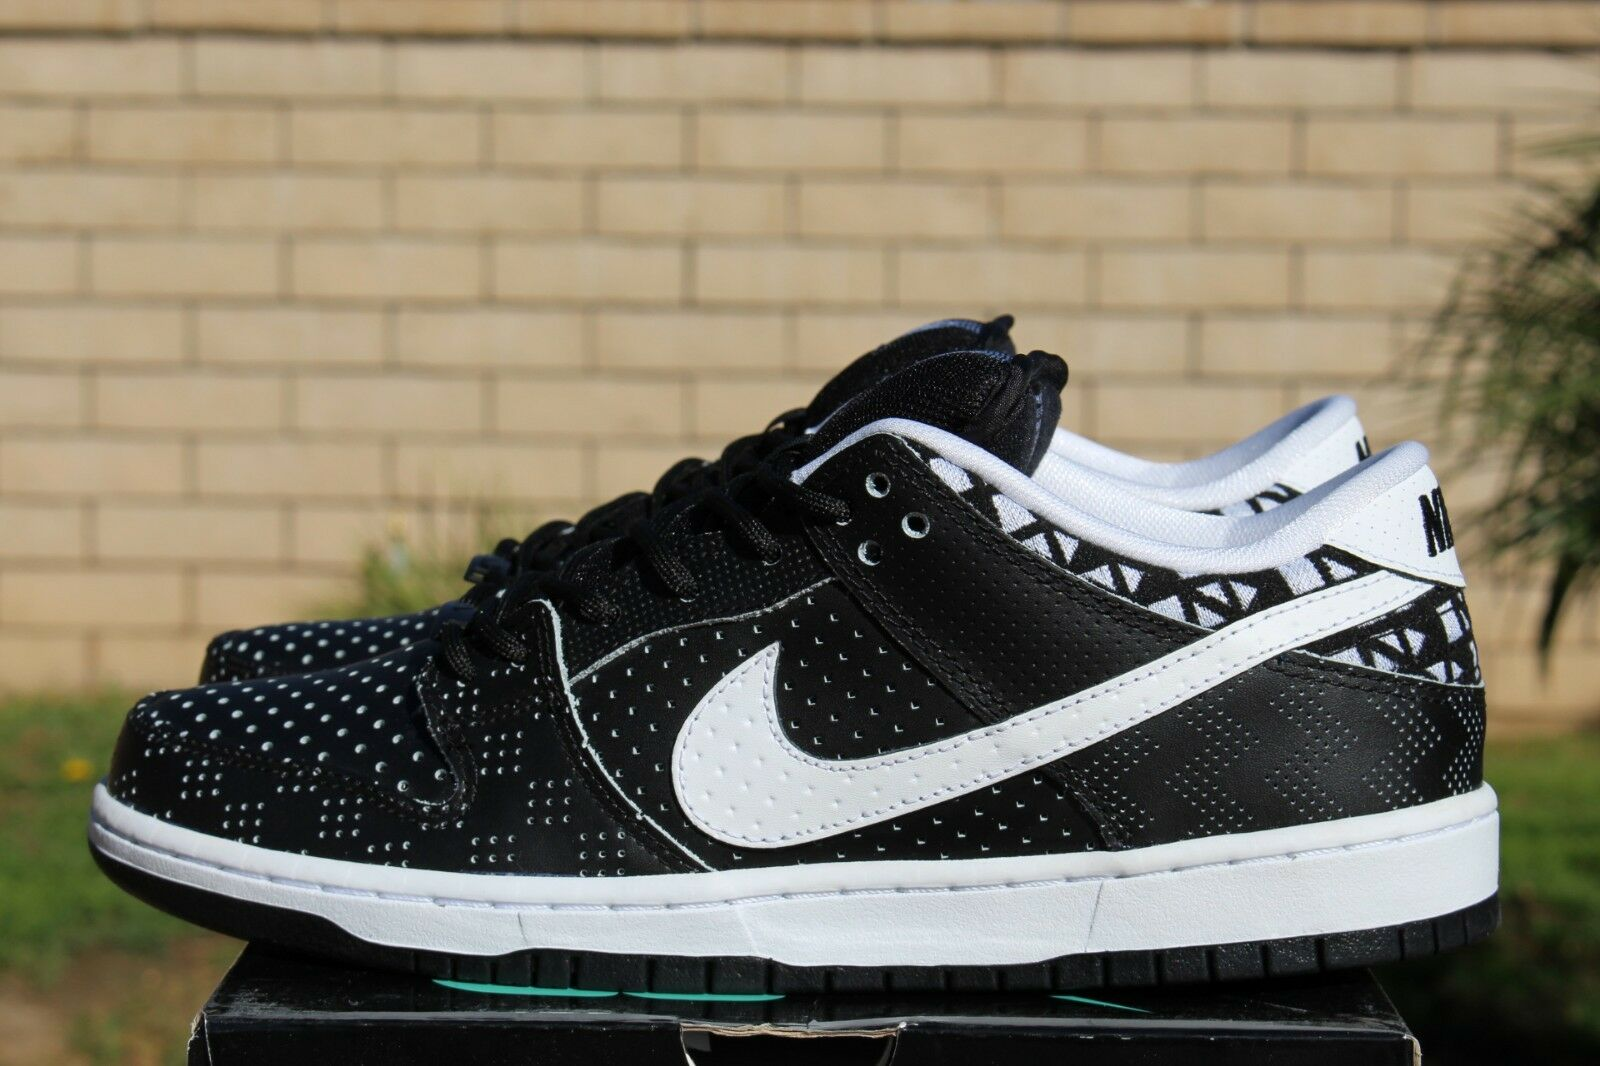 NIKE DUNK LOW PREMIUM BHM SB QS Price reduction